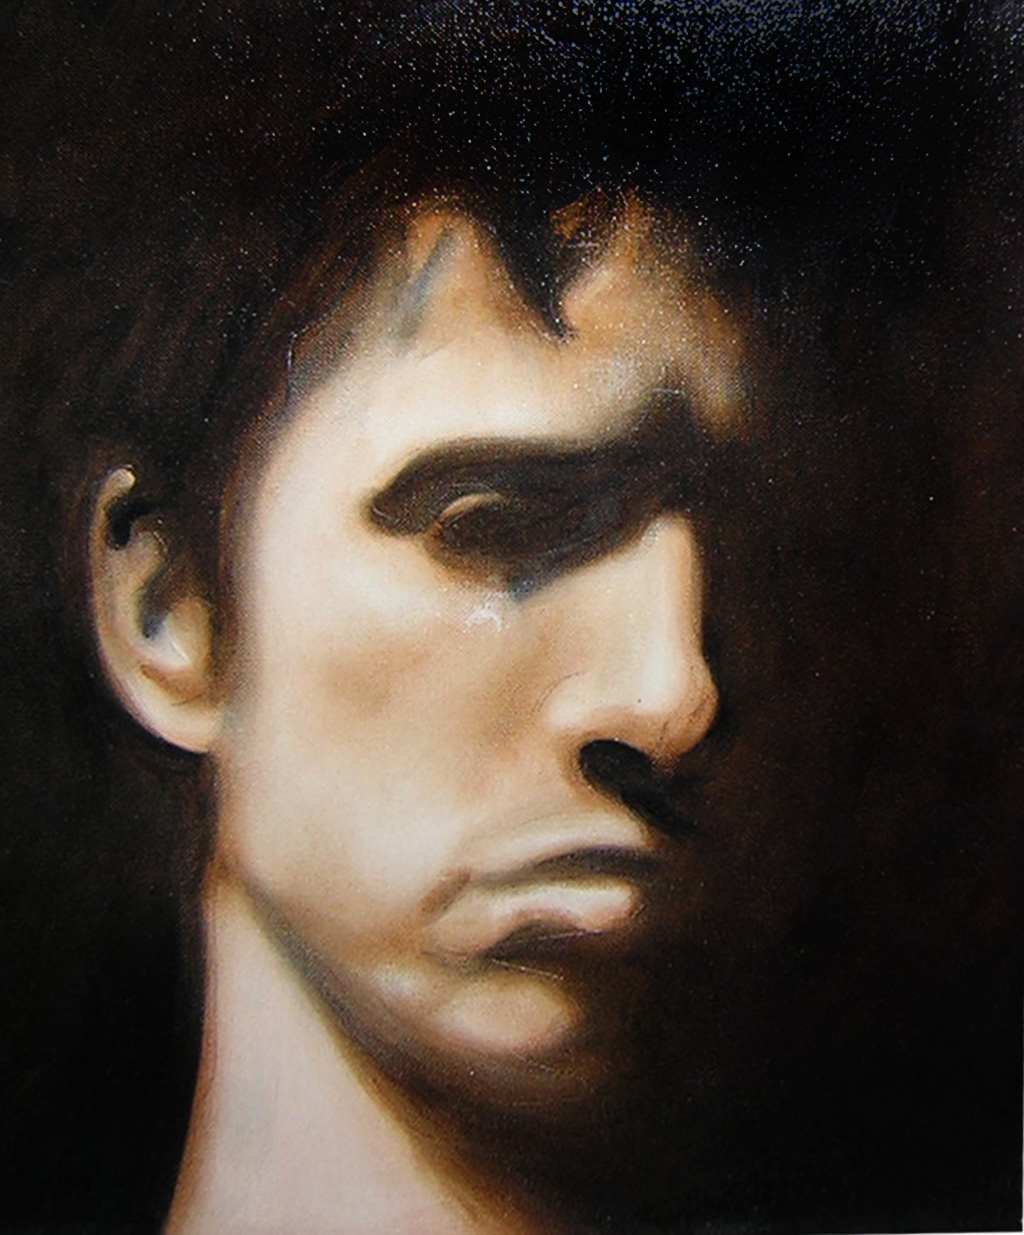 Sadness (Portrait of Tyrone), 2001